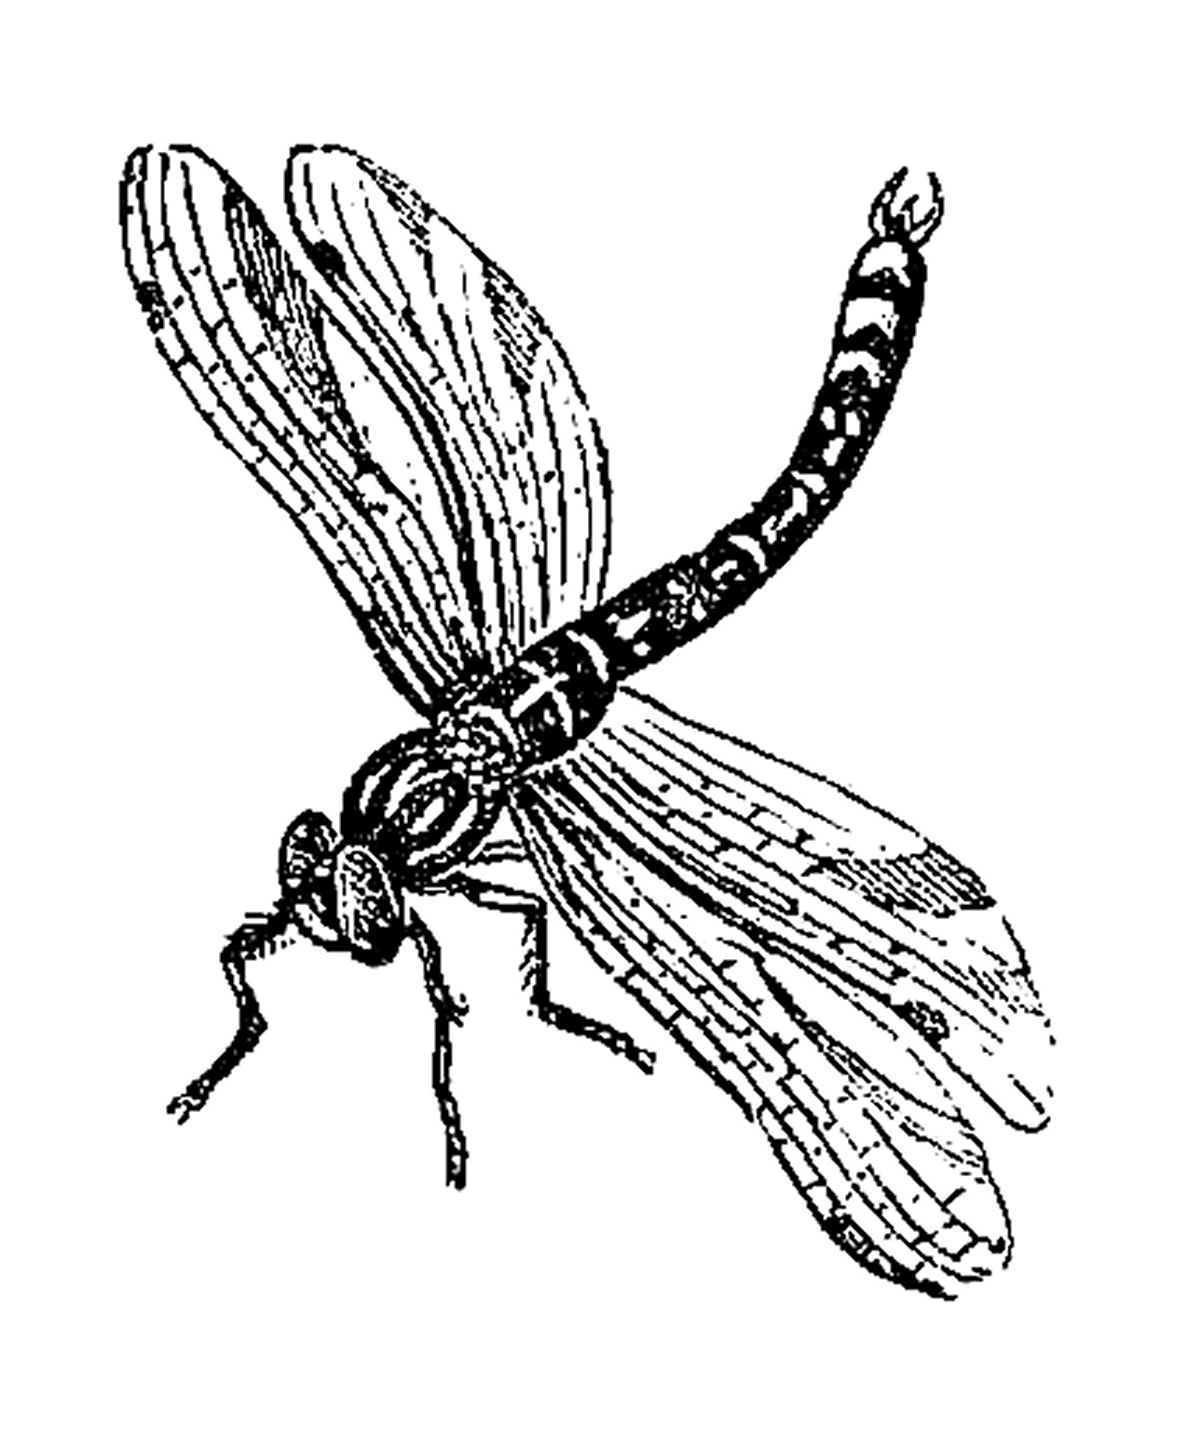 Dragonfly black and white clipart 3 » Clipart Station.